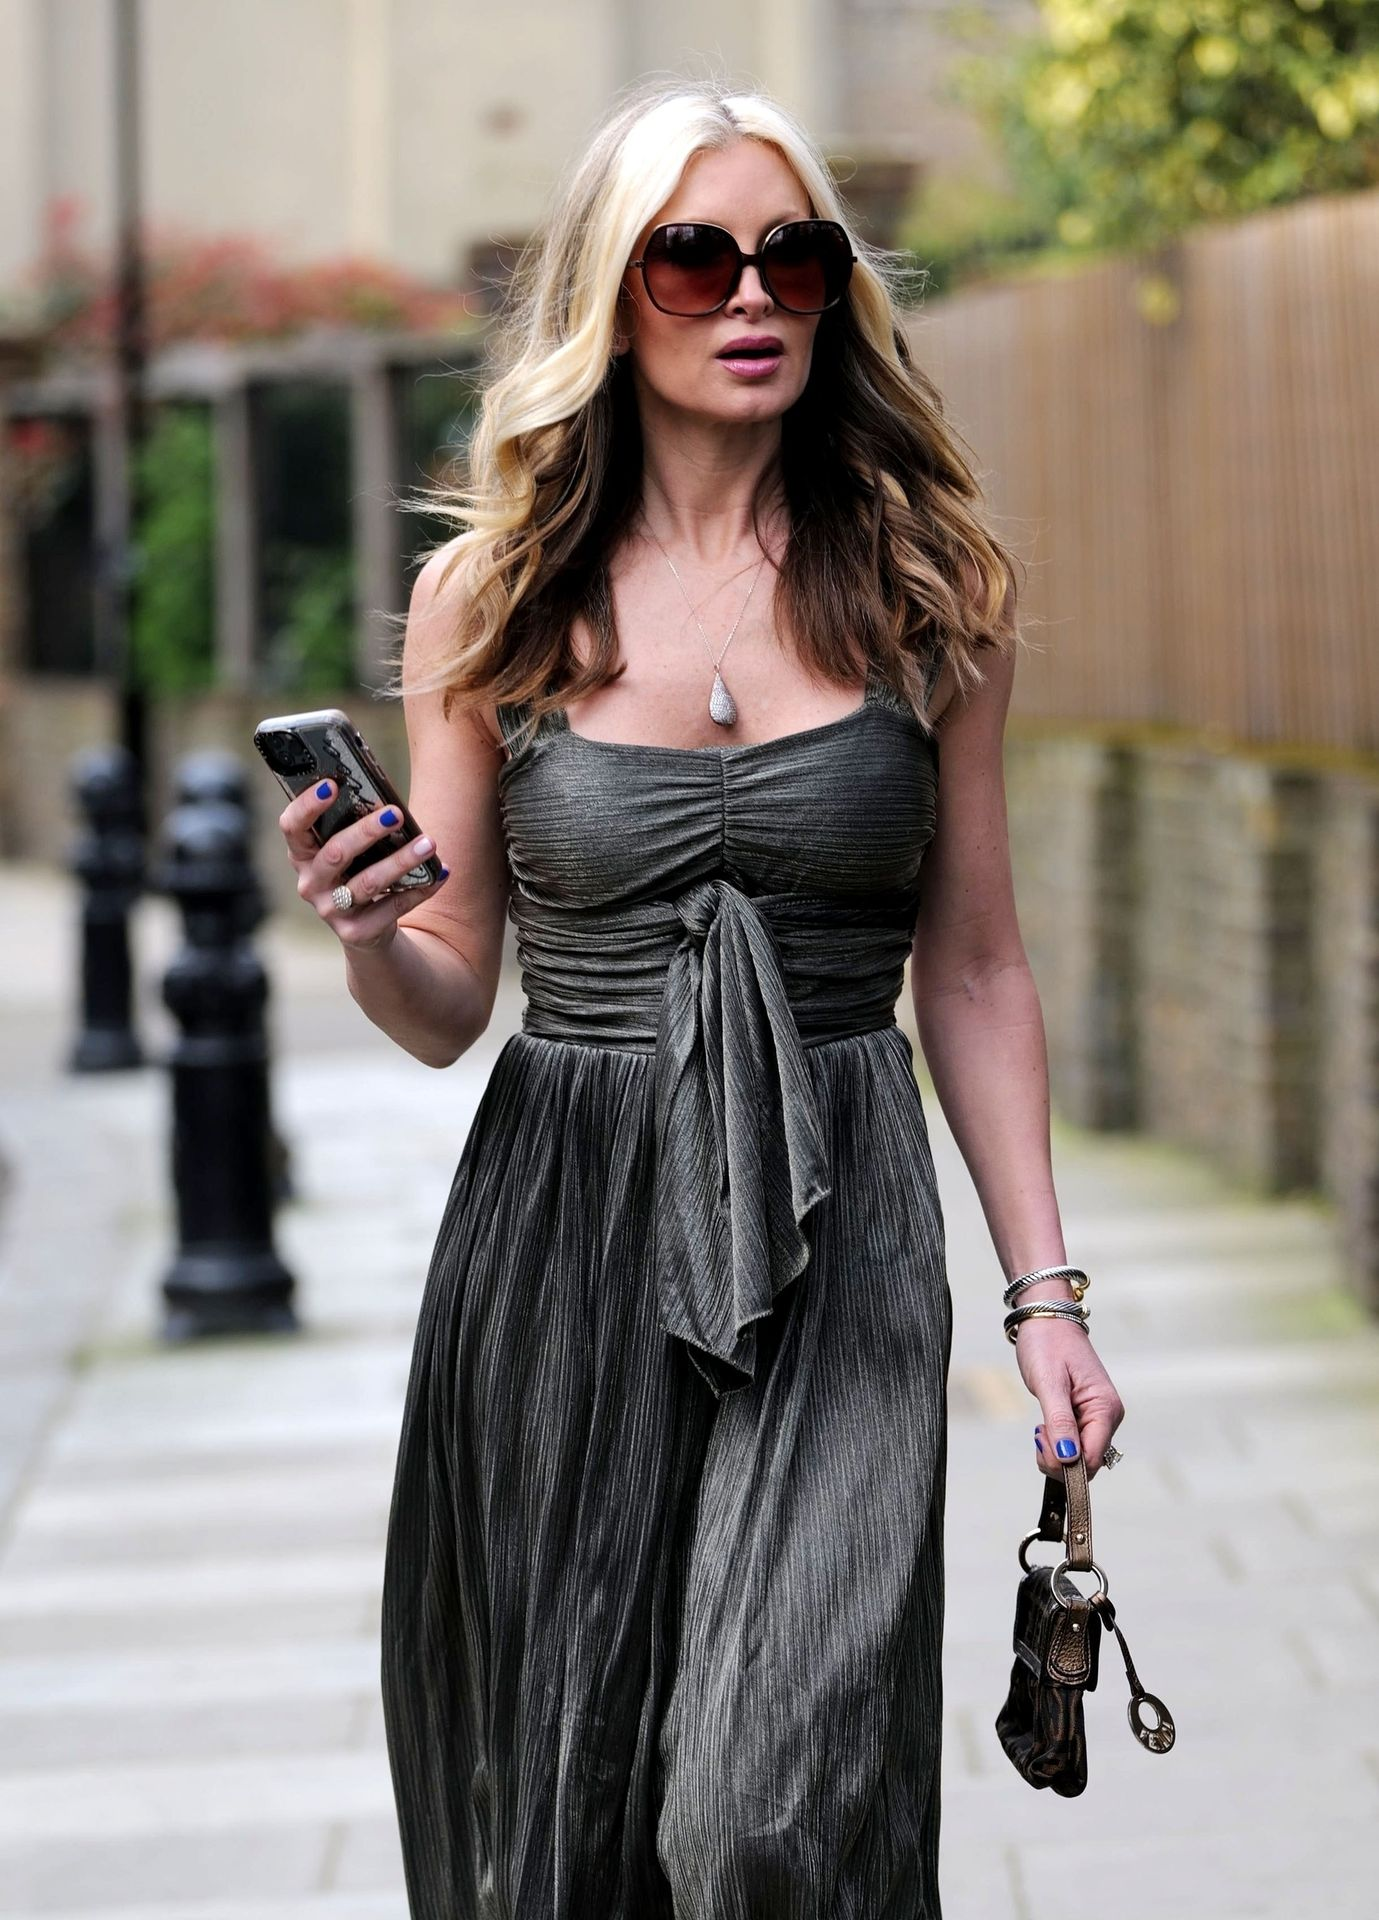 Caprice Bourret Steps Out Looking Glamorous In London 0025